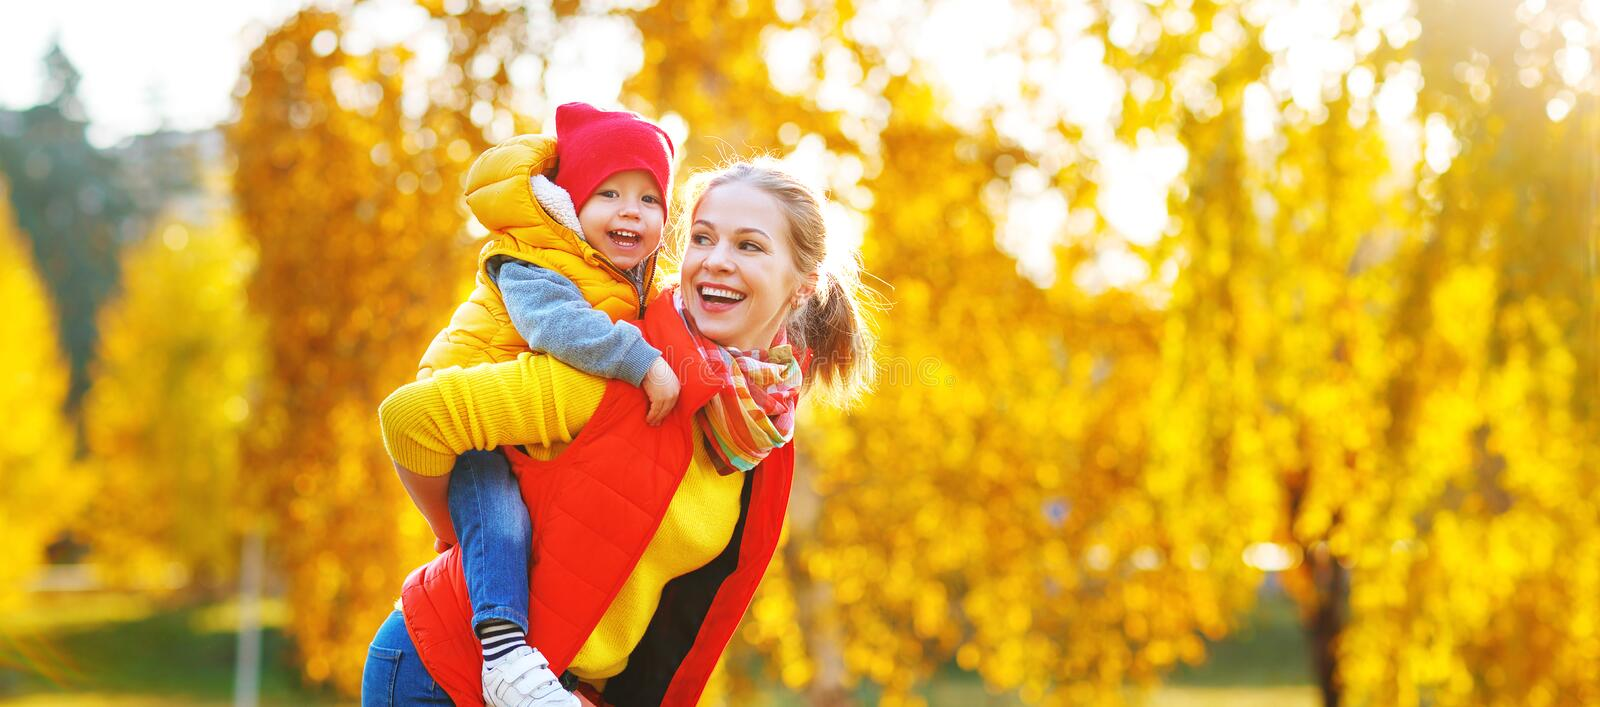 Happy family mother and baby son on autumn walk. Happy family mother and baby son playing and laughing on autumn walk royalty free stock photography